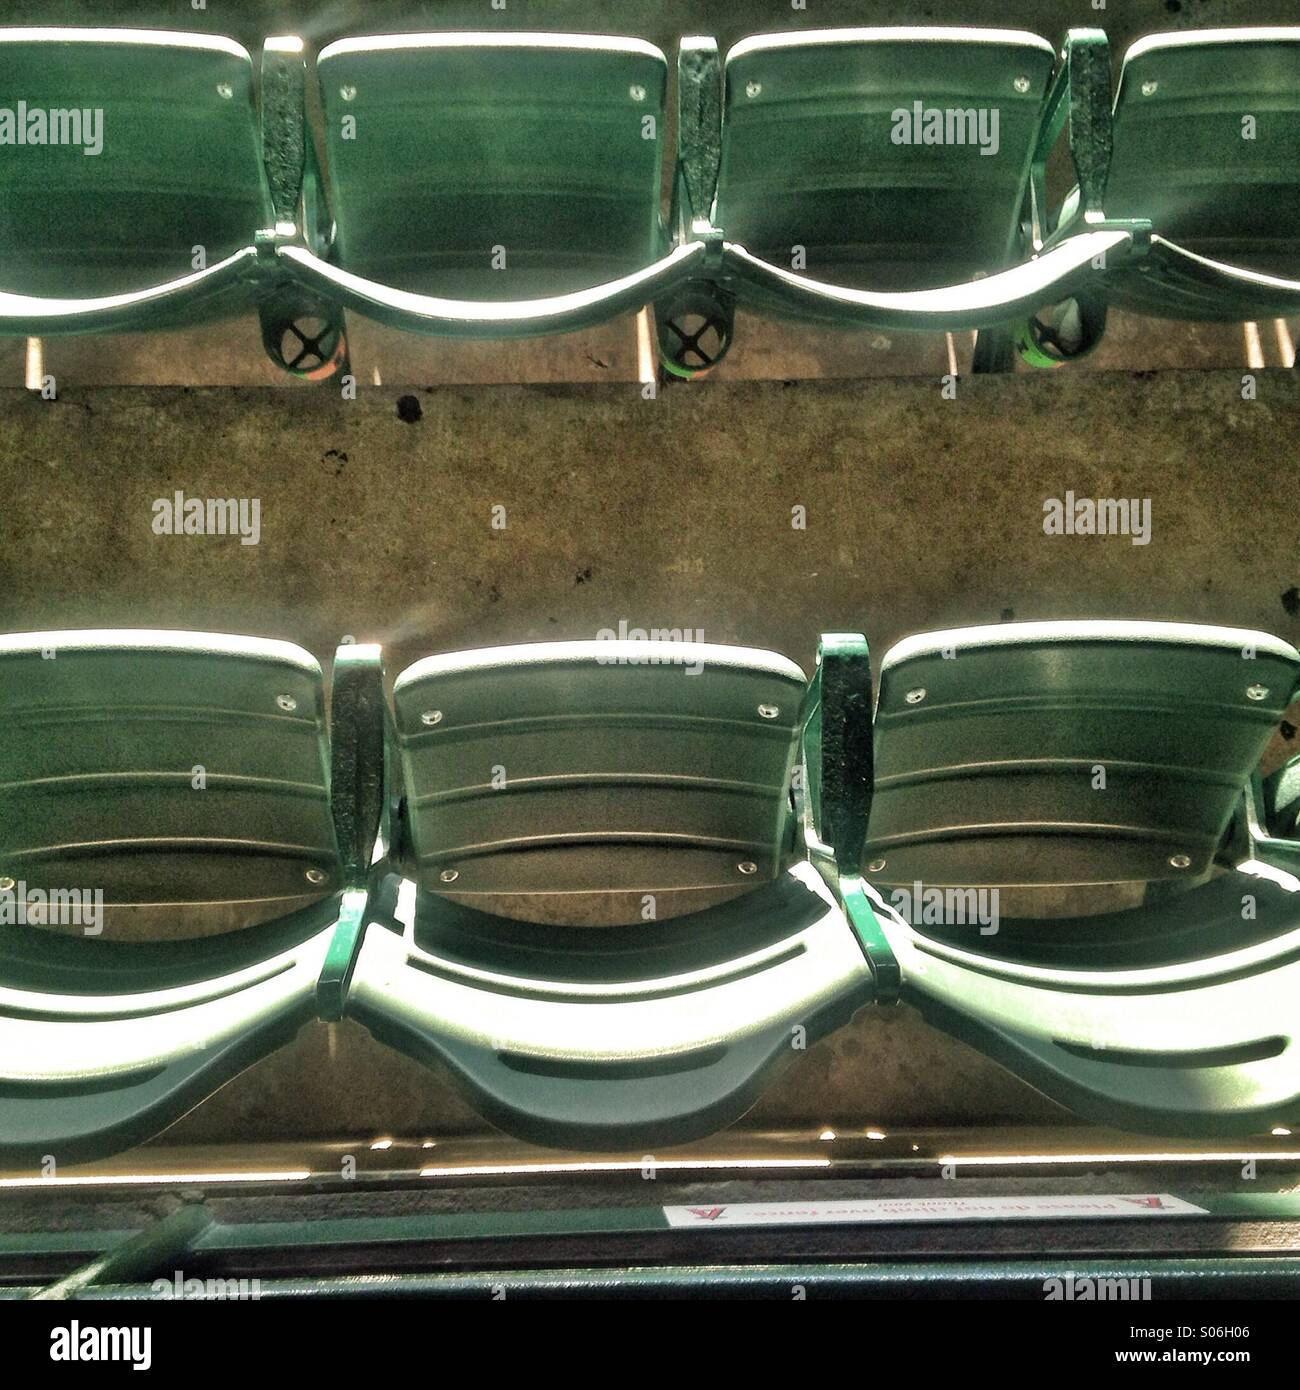 Seats at a baseball stadium - Stock Image